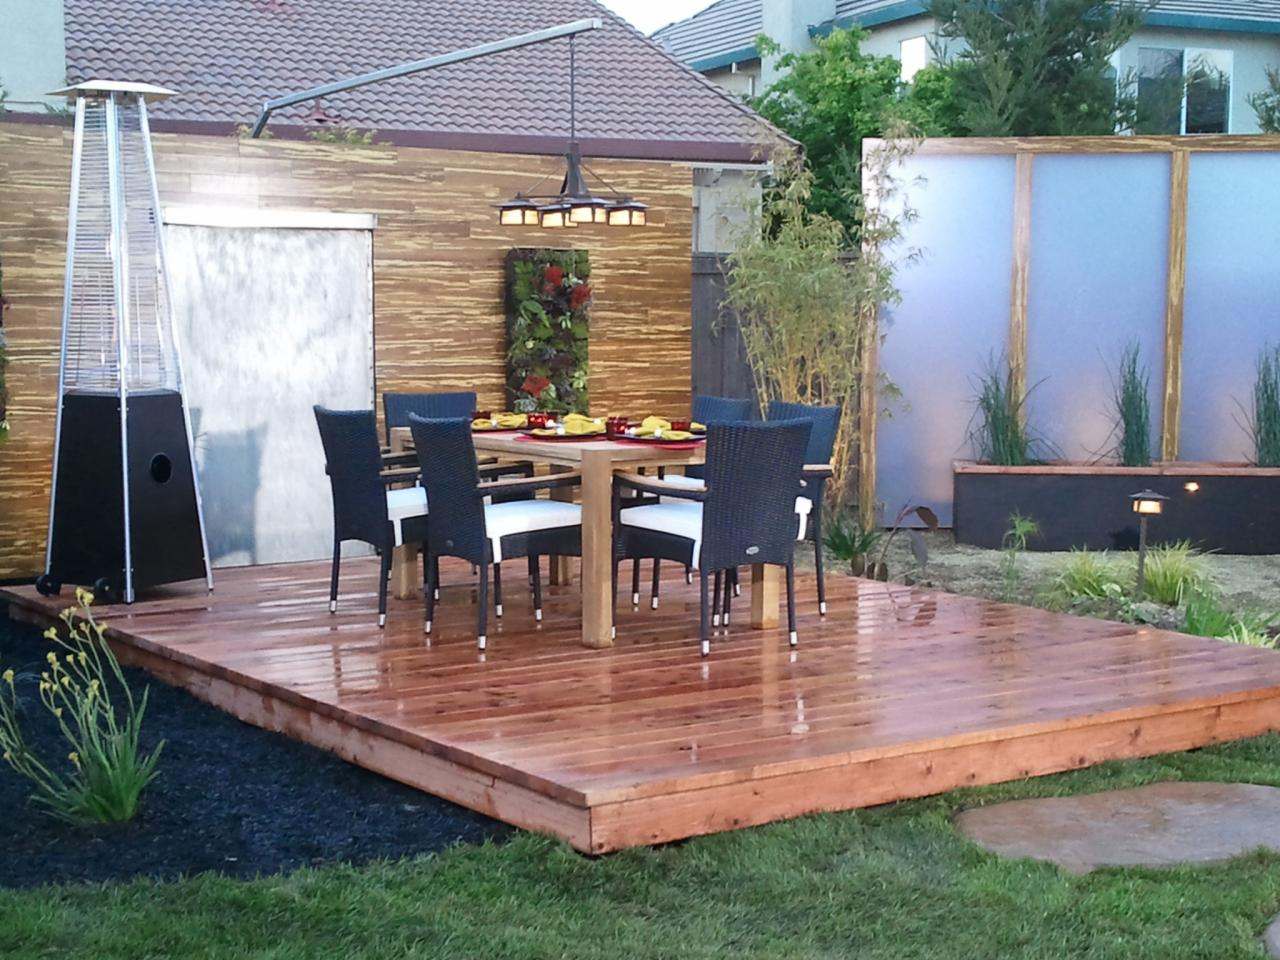 Floating decks hgtv for Backyard decks